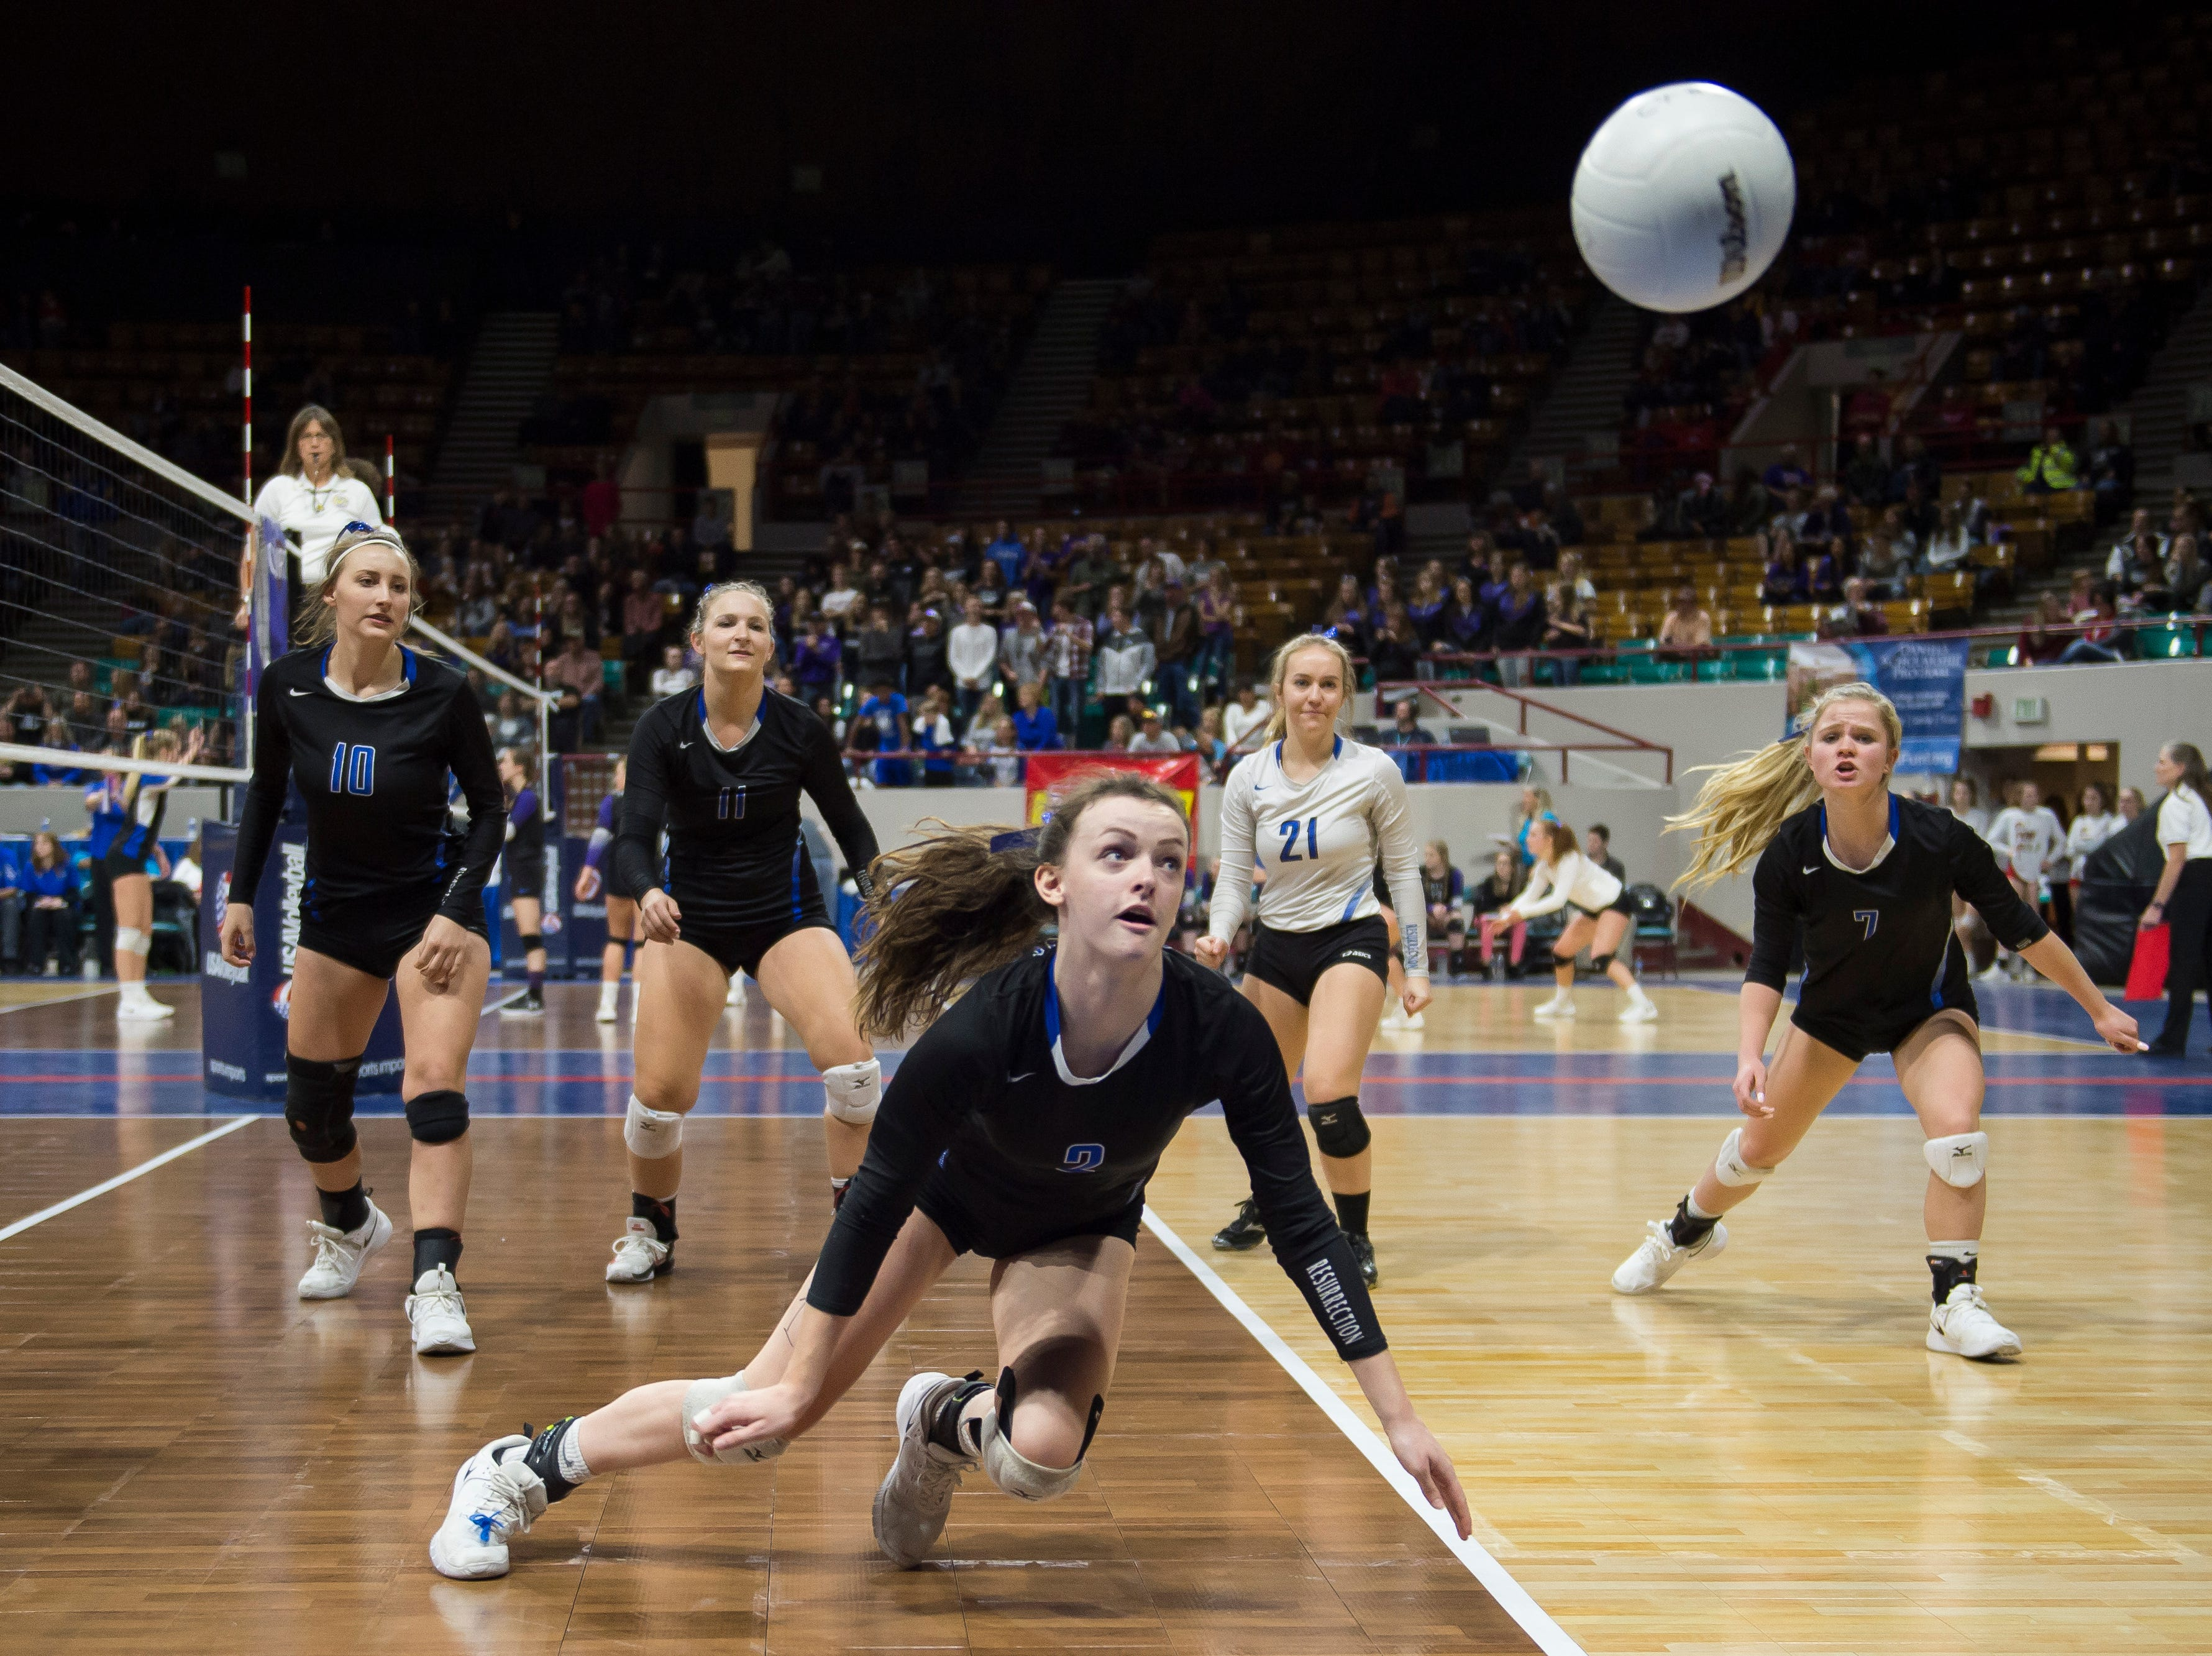 Resurrection Christian freshman Aly Reeser (2) attempts to dig a ball during a first round state game against Faith Christian on Thursday, Nov. 8, 2018, at the Denver Coliseum in Denver, Colo.